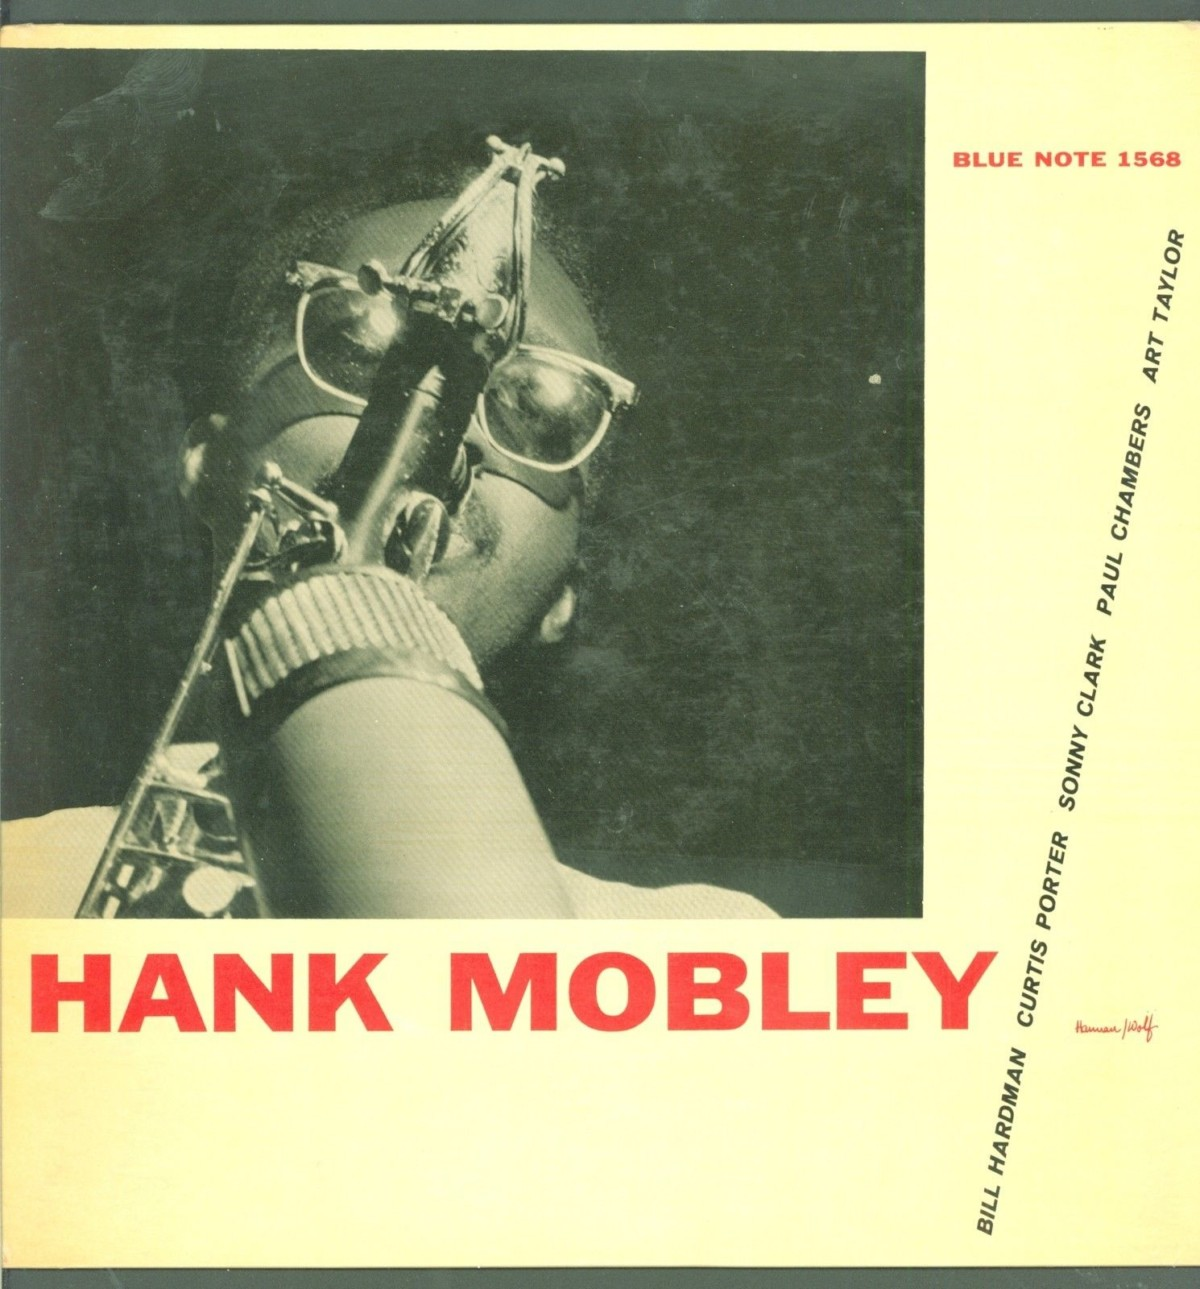 Ok, we have a final price on that copy of Hank Mobley, Blue Note 1568 from  the Jazz Record Center. The final price was $4,619. And the winner of the  contest ...